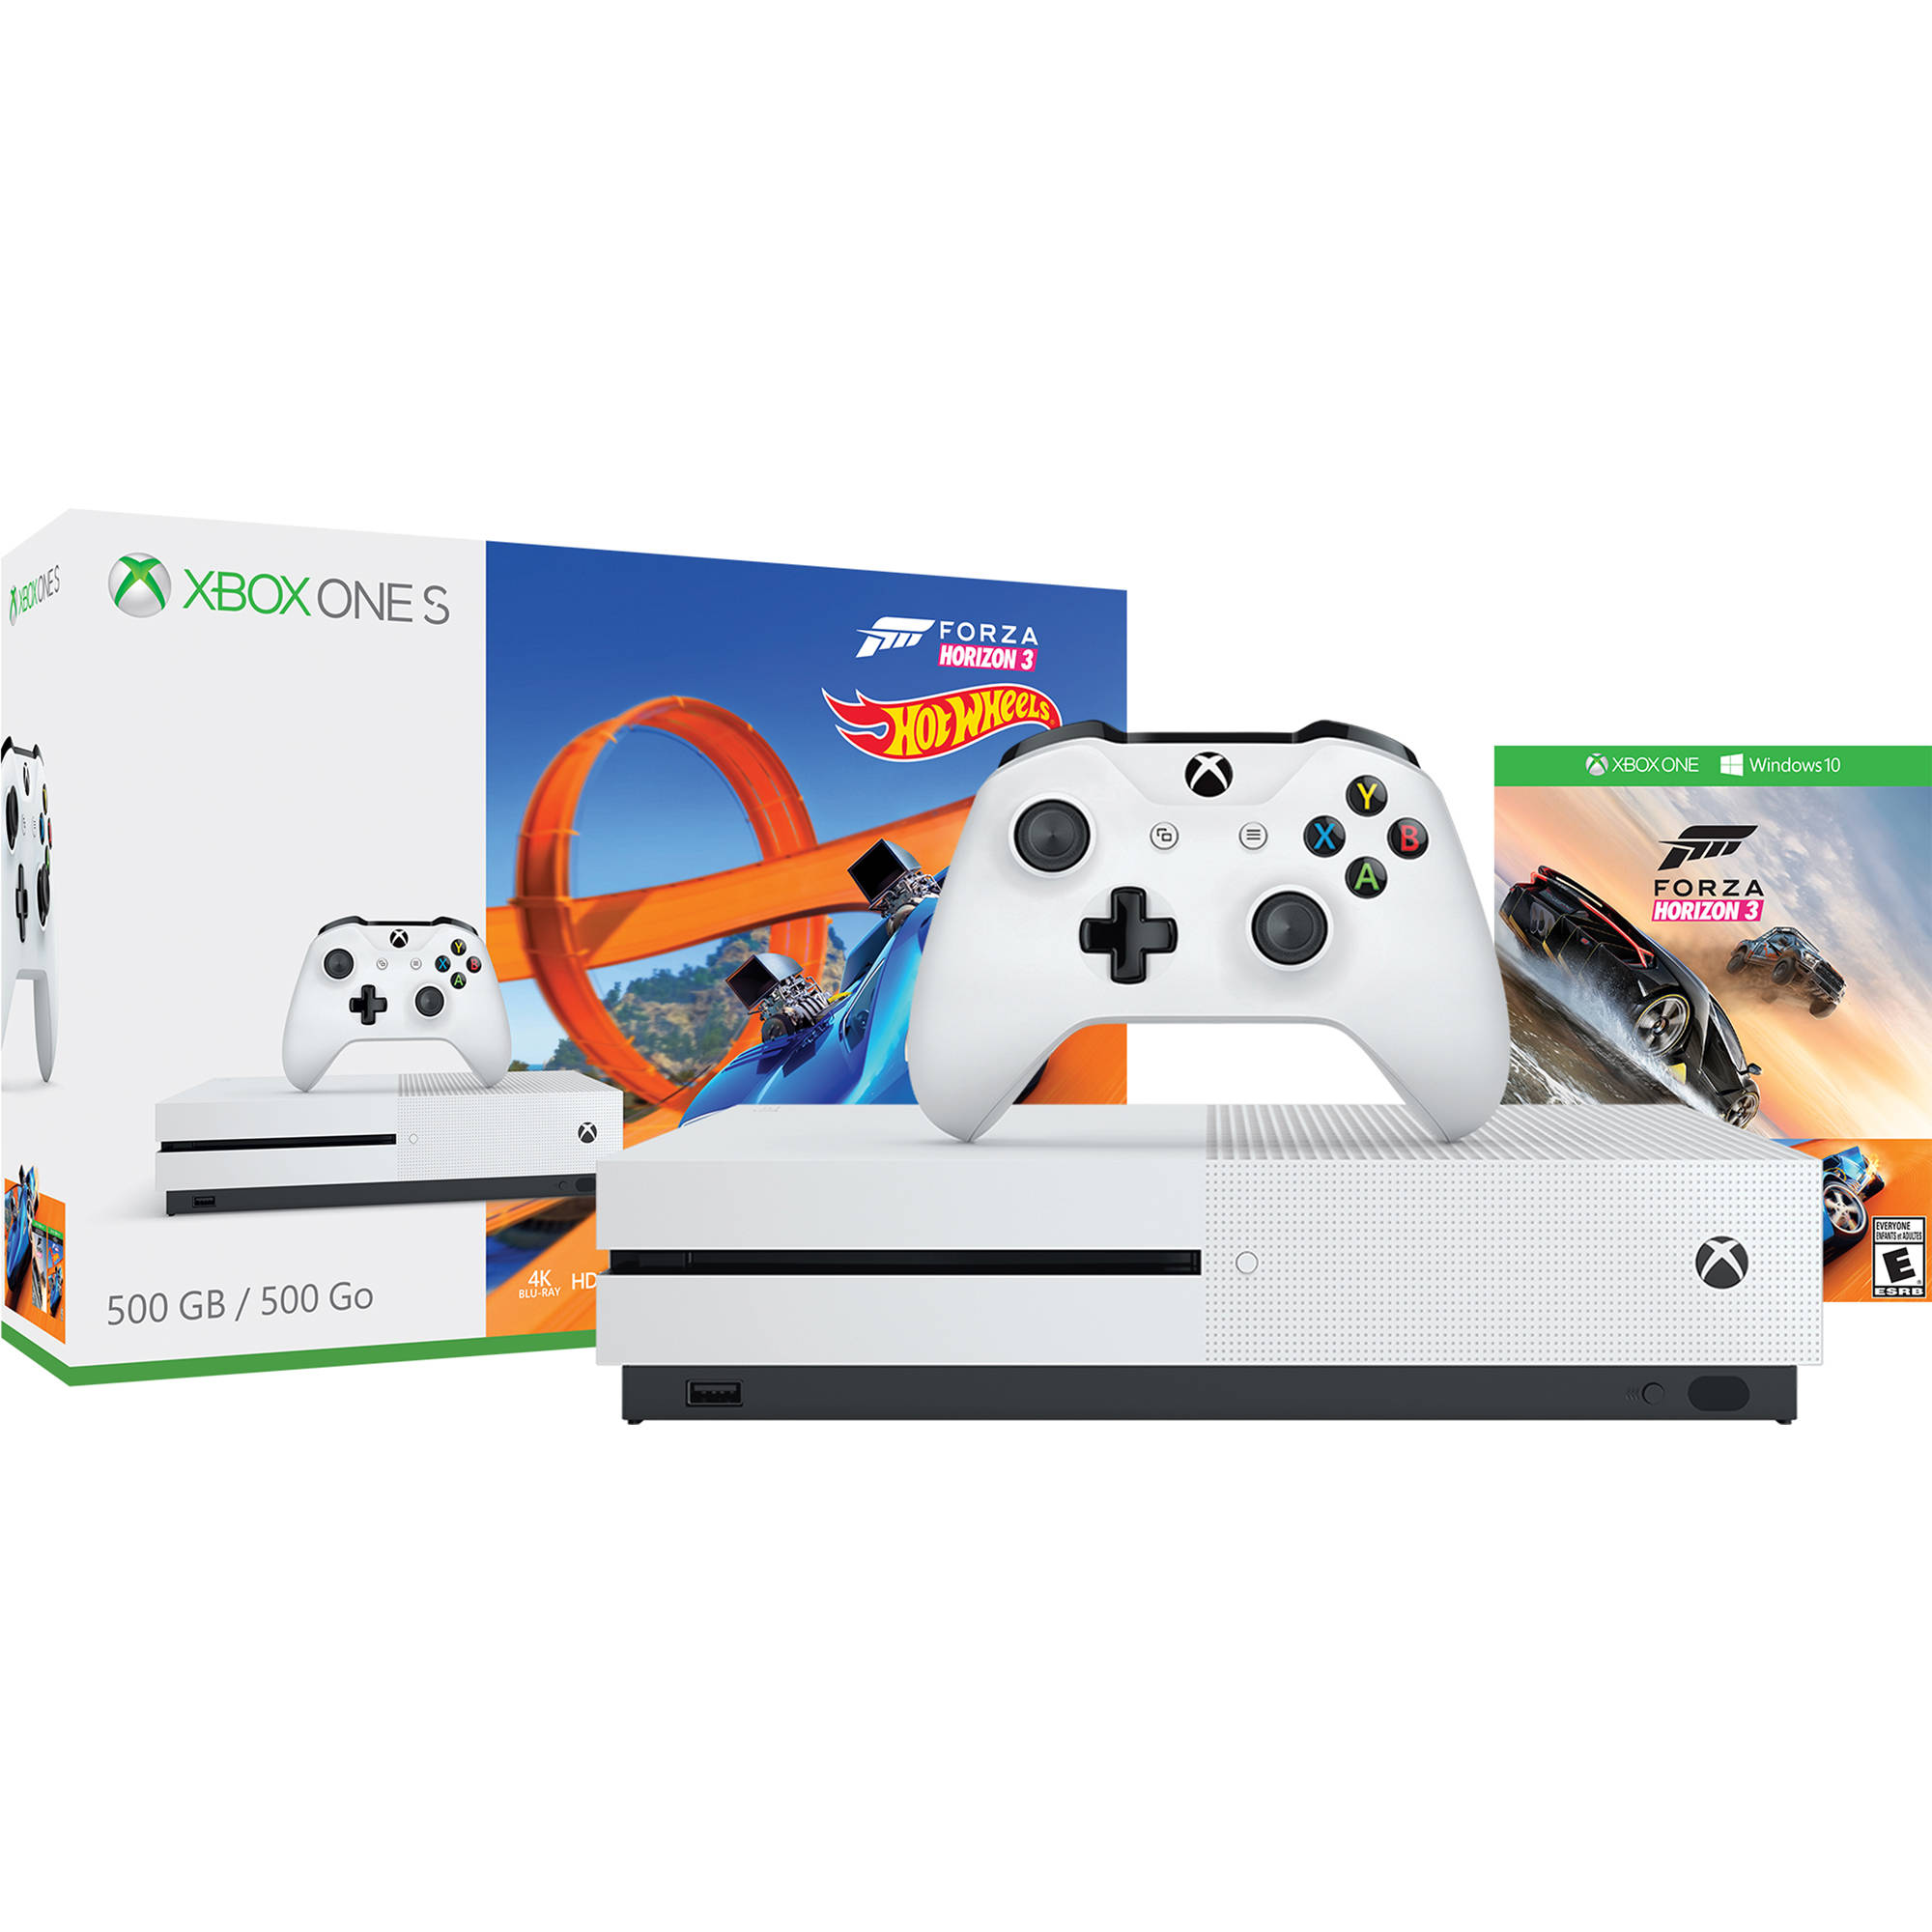 microsoft xbox one s forza horizon 3 hot wheels bundle zq9 00202. Black Bedroom Furniture Sets. Home Design Ideas